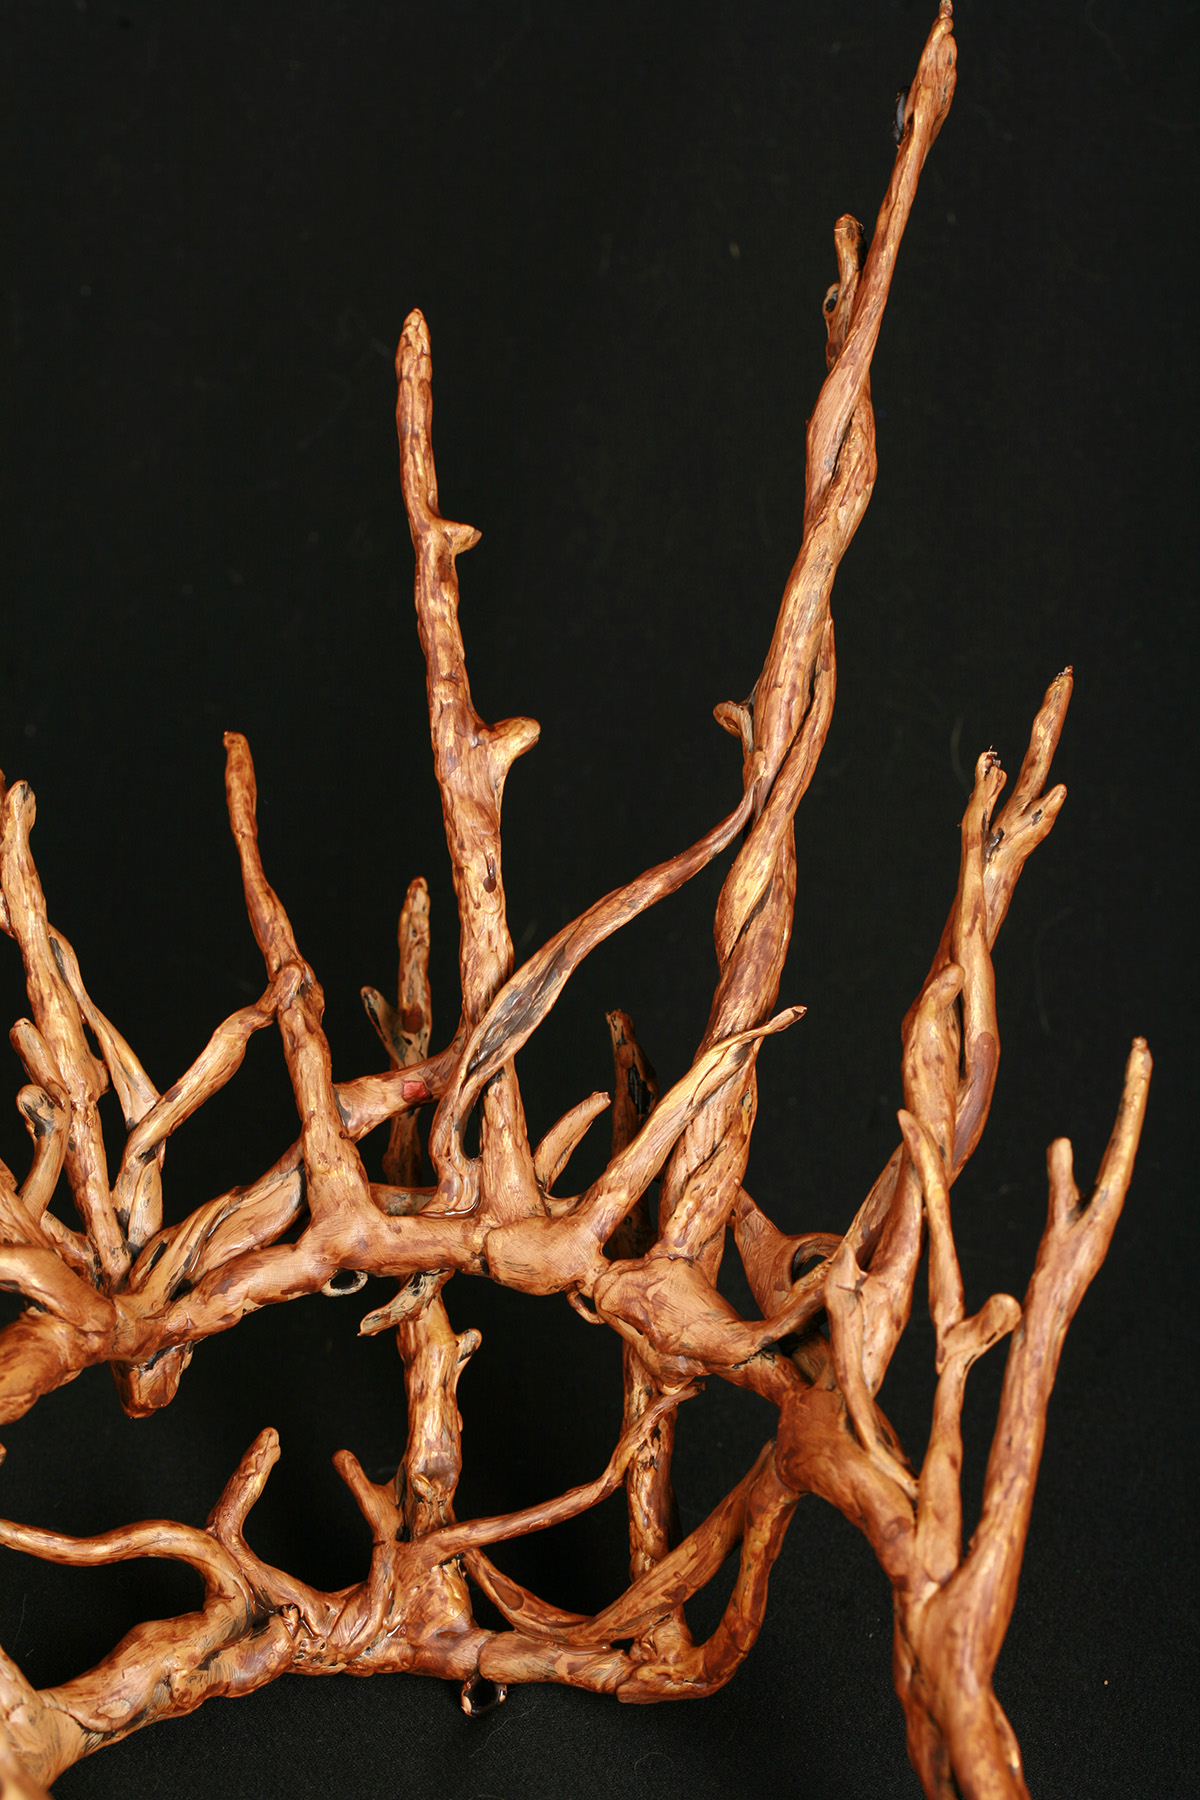 A plastic replica of a Thranduil crown - from The Hobbit -painted to look realistically like wooden twigs.